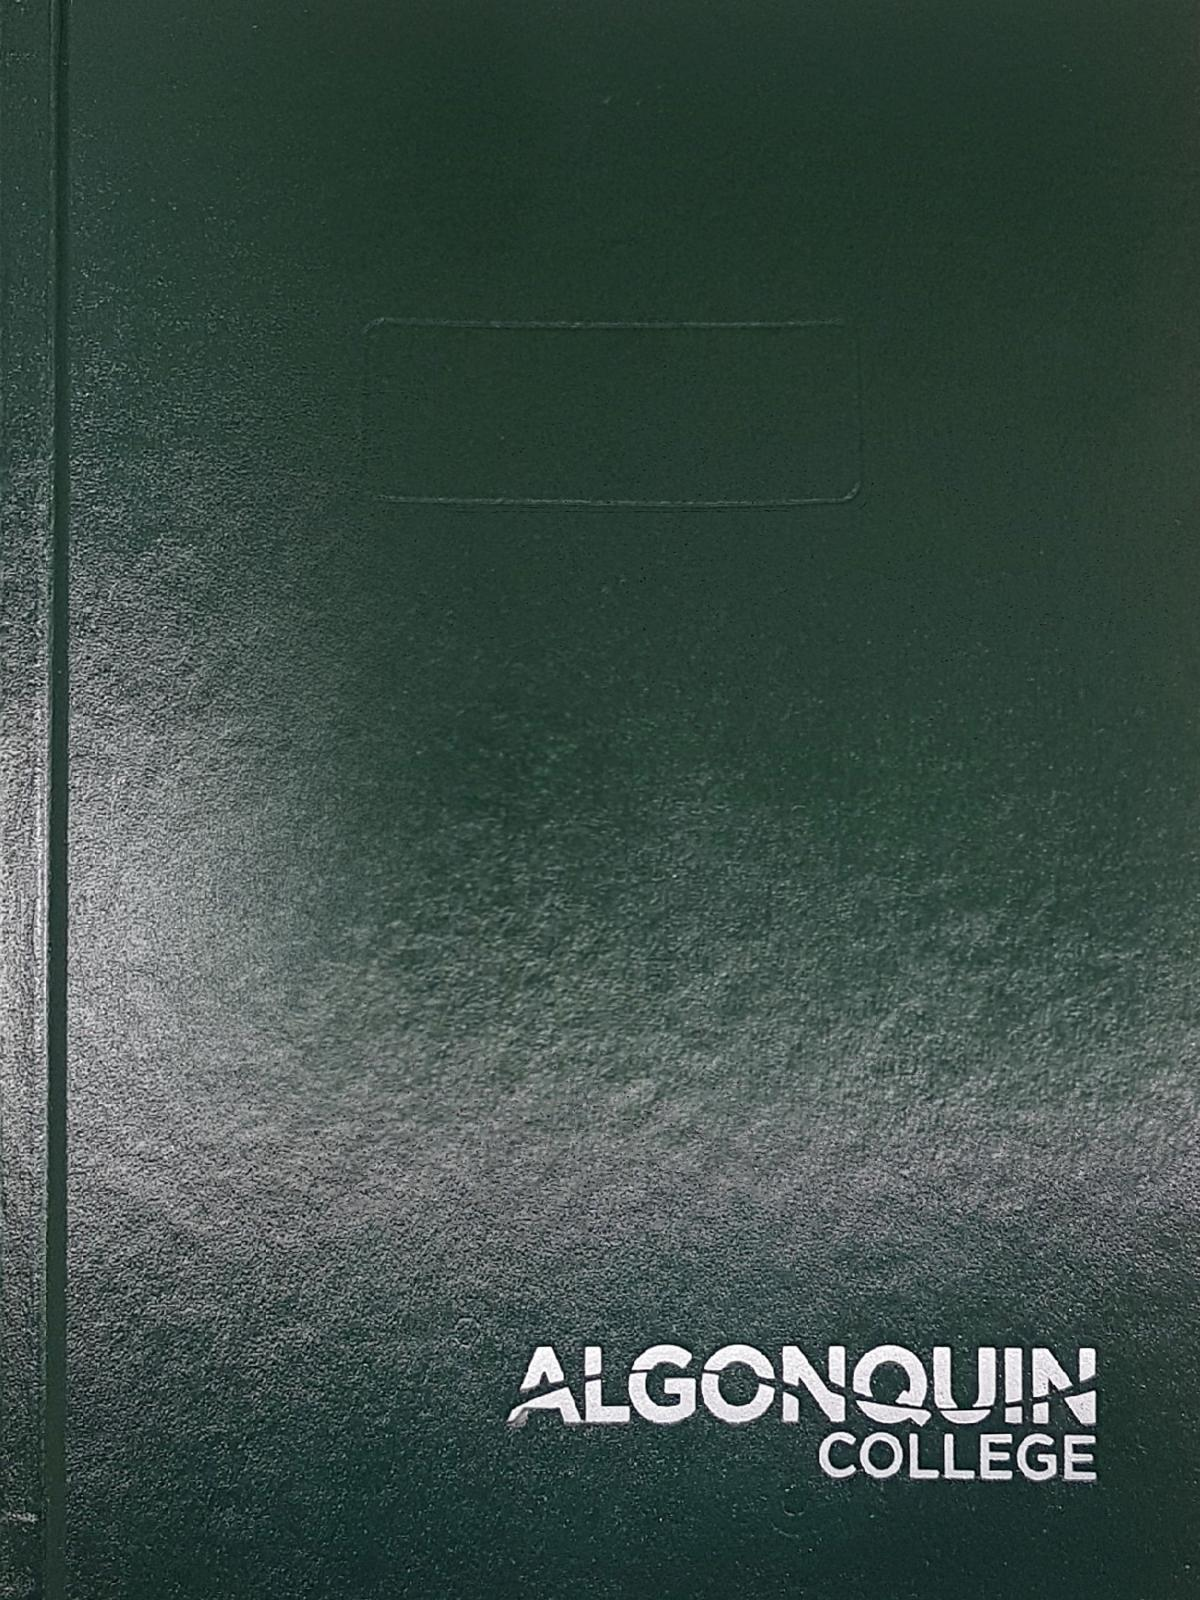 Algonquin college writing help